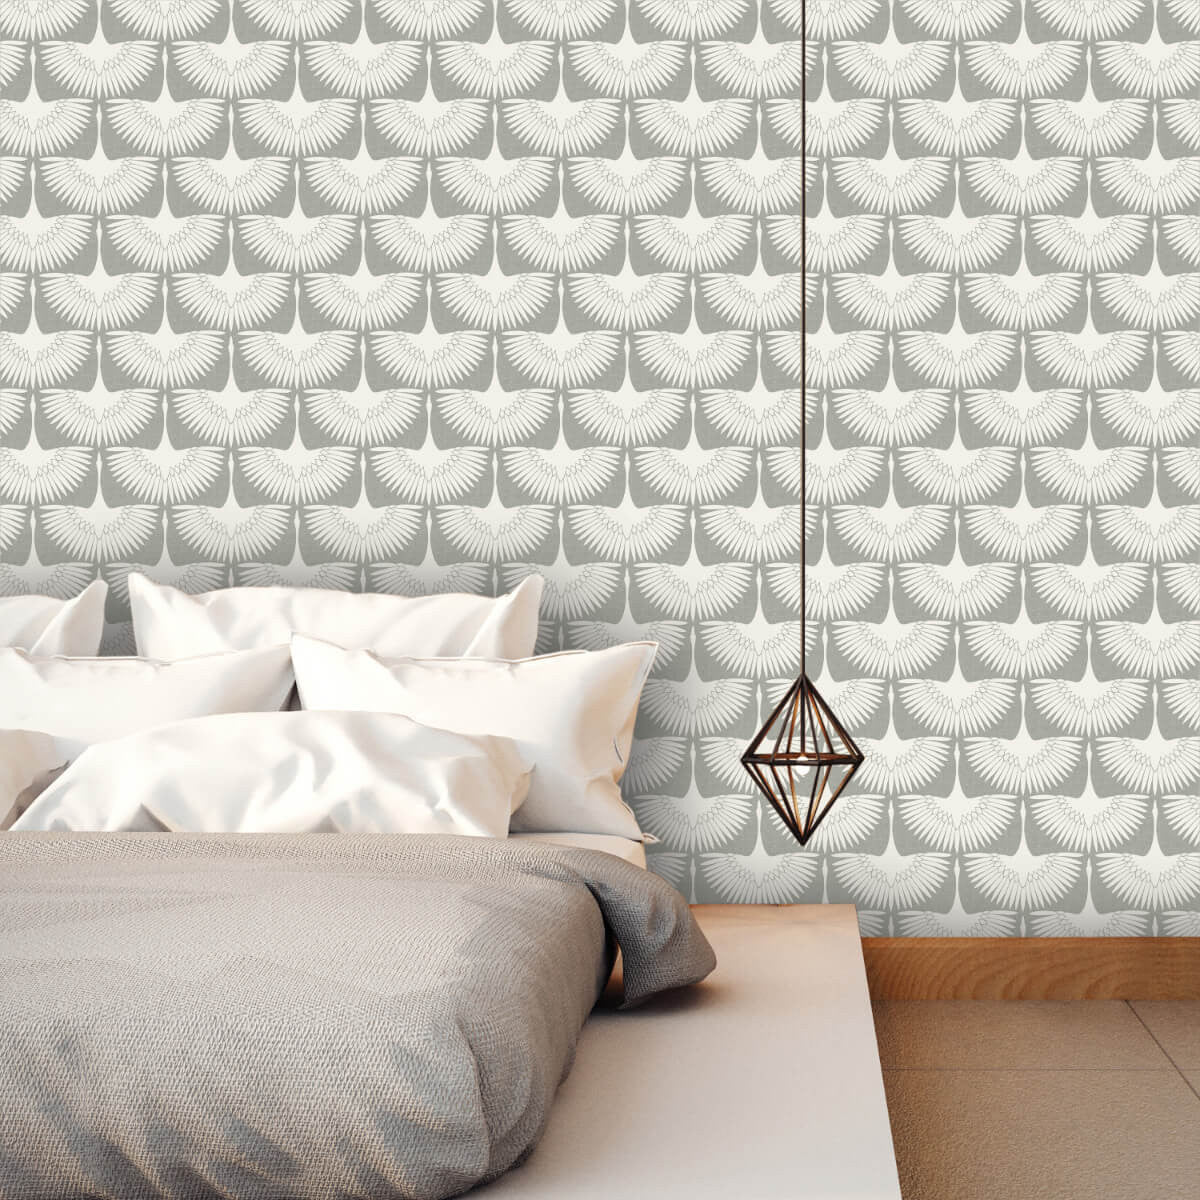 Feather Flock Self Adhesive Wallpaper In Chalk By